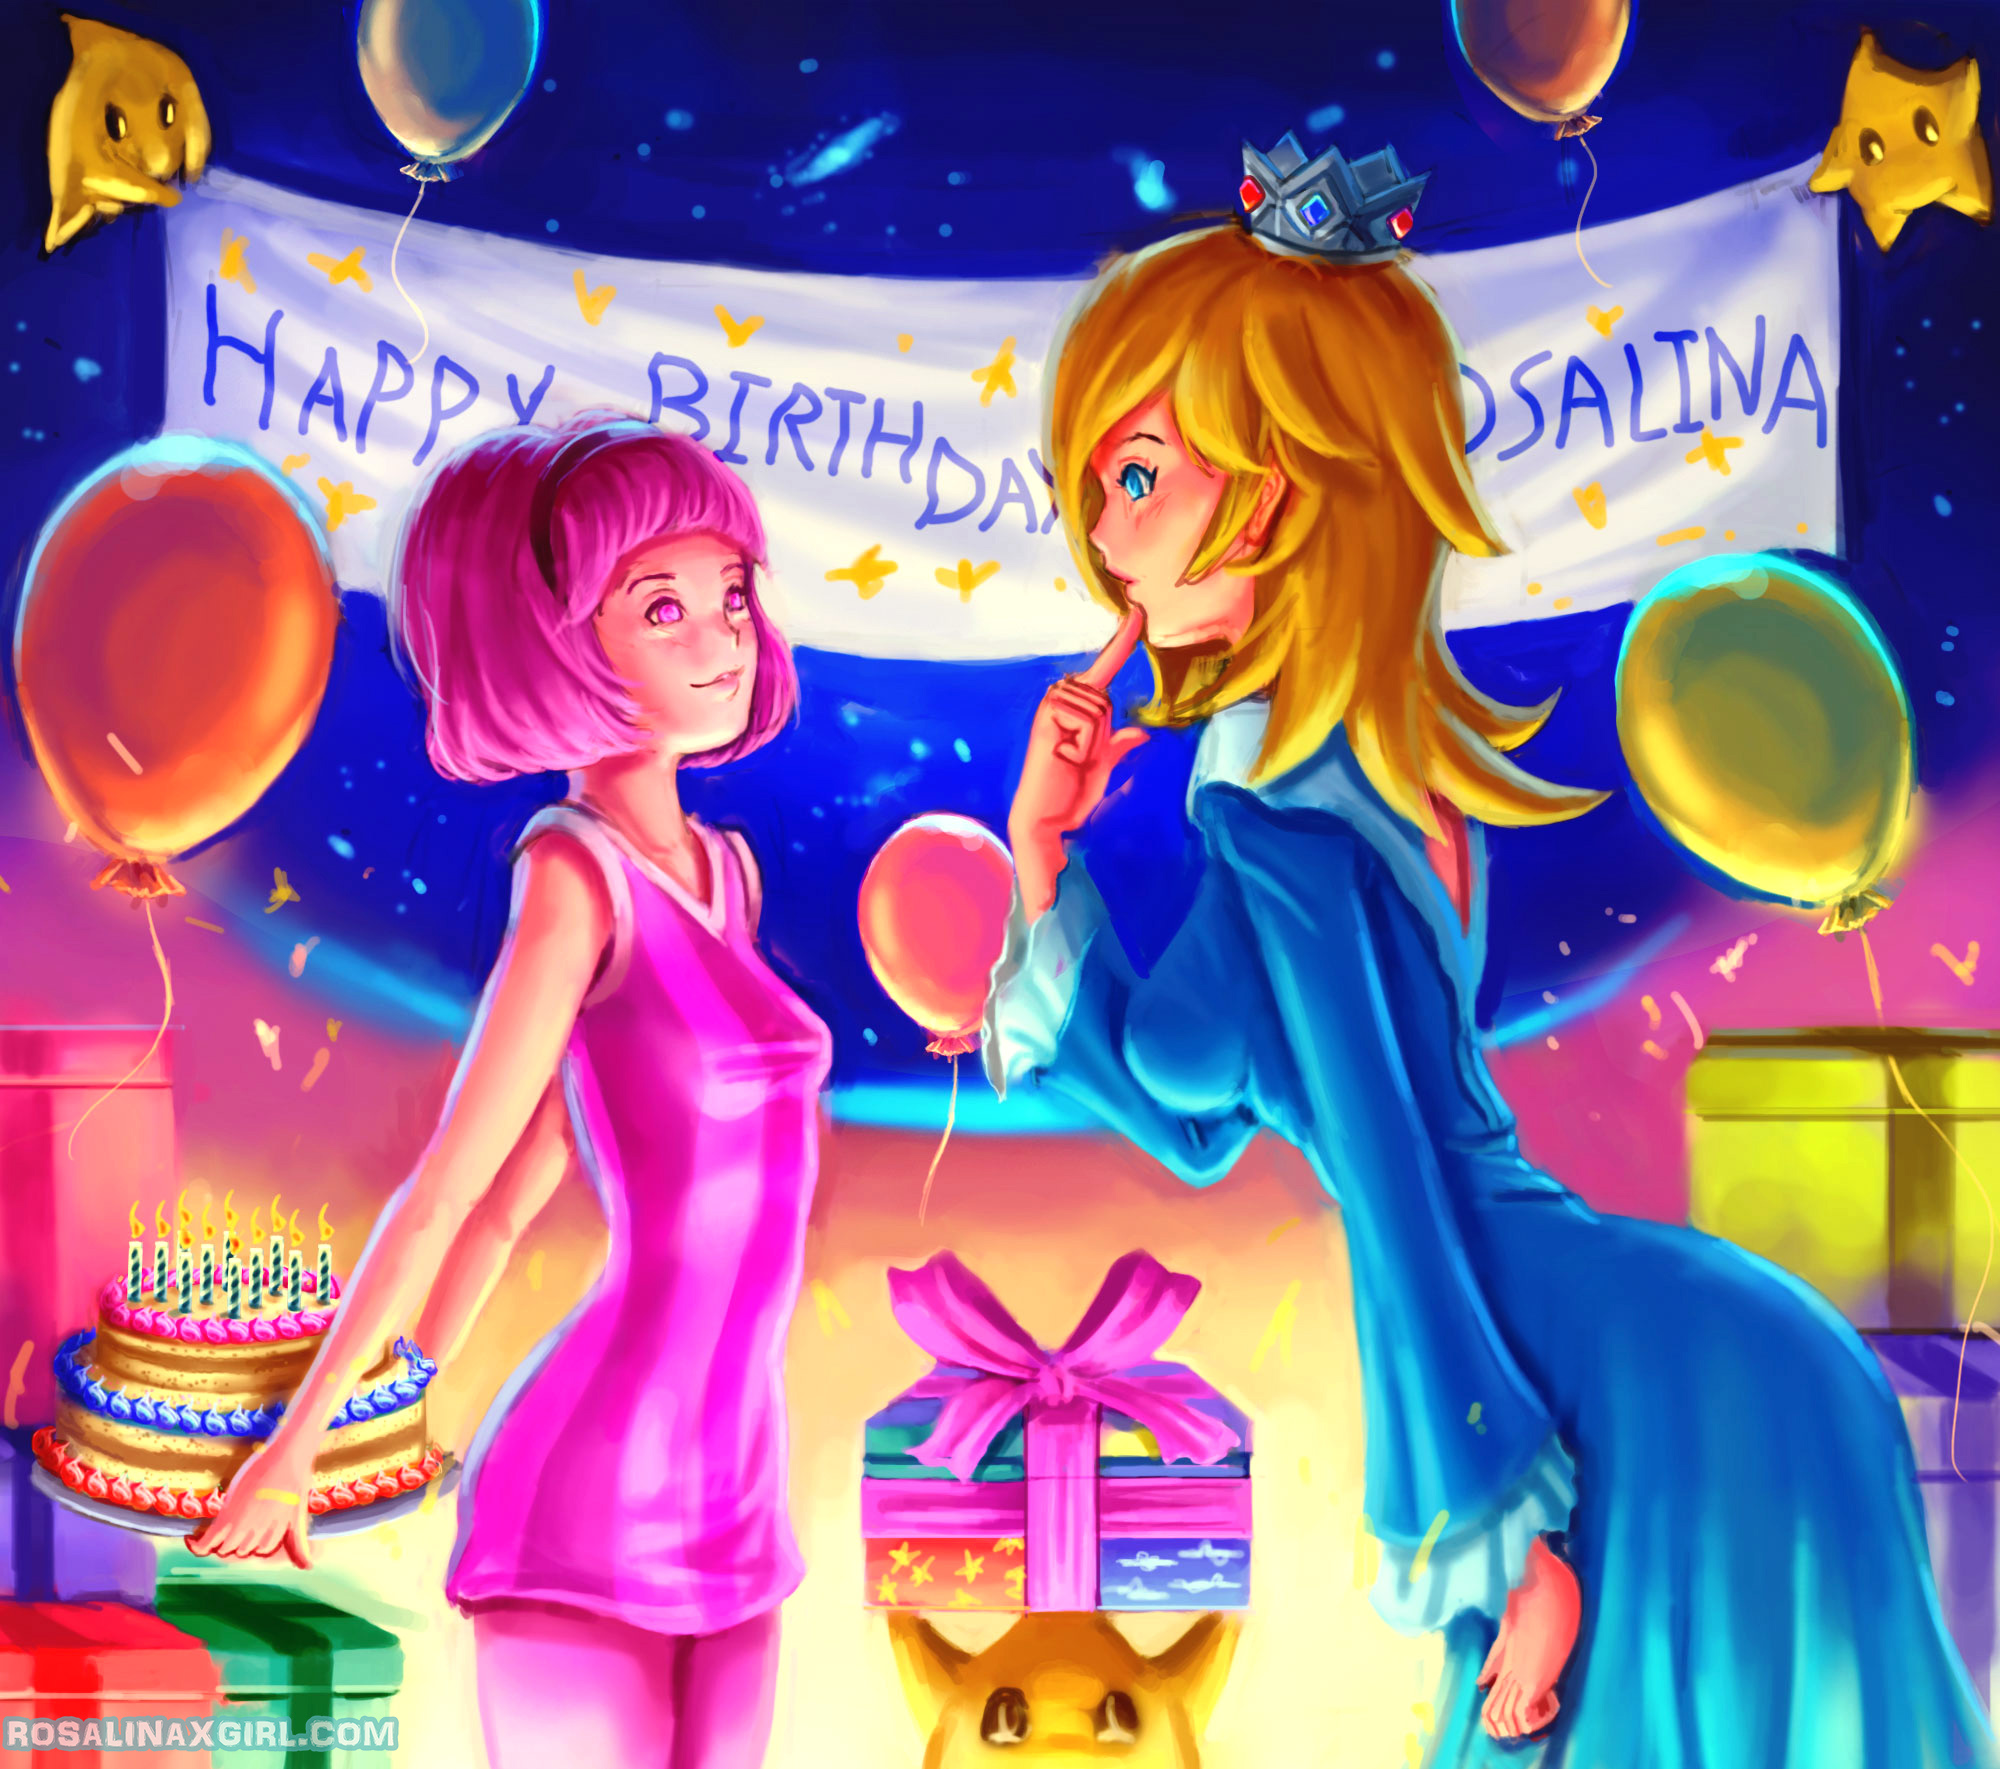 nintendo mario princess rosalina birthday crossover gift lazy town stephanie